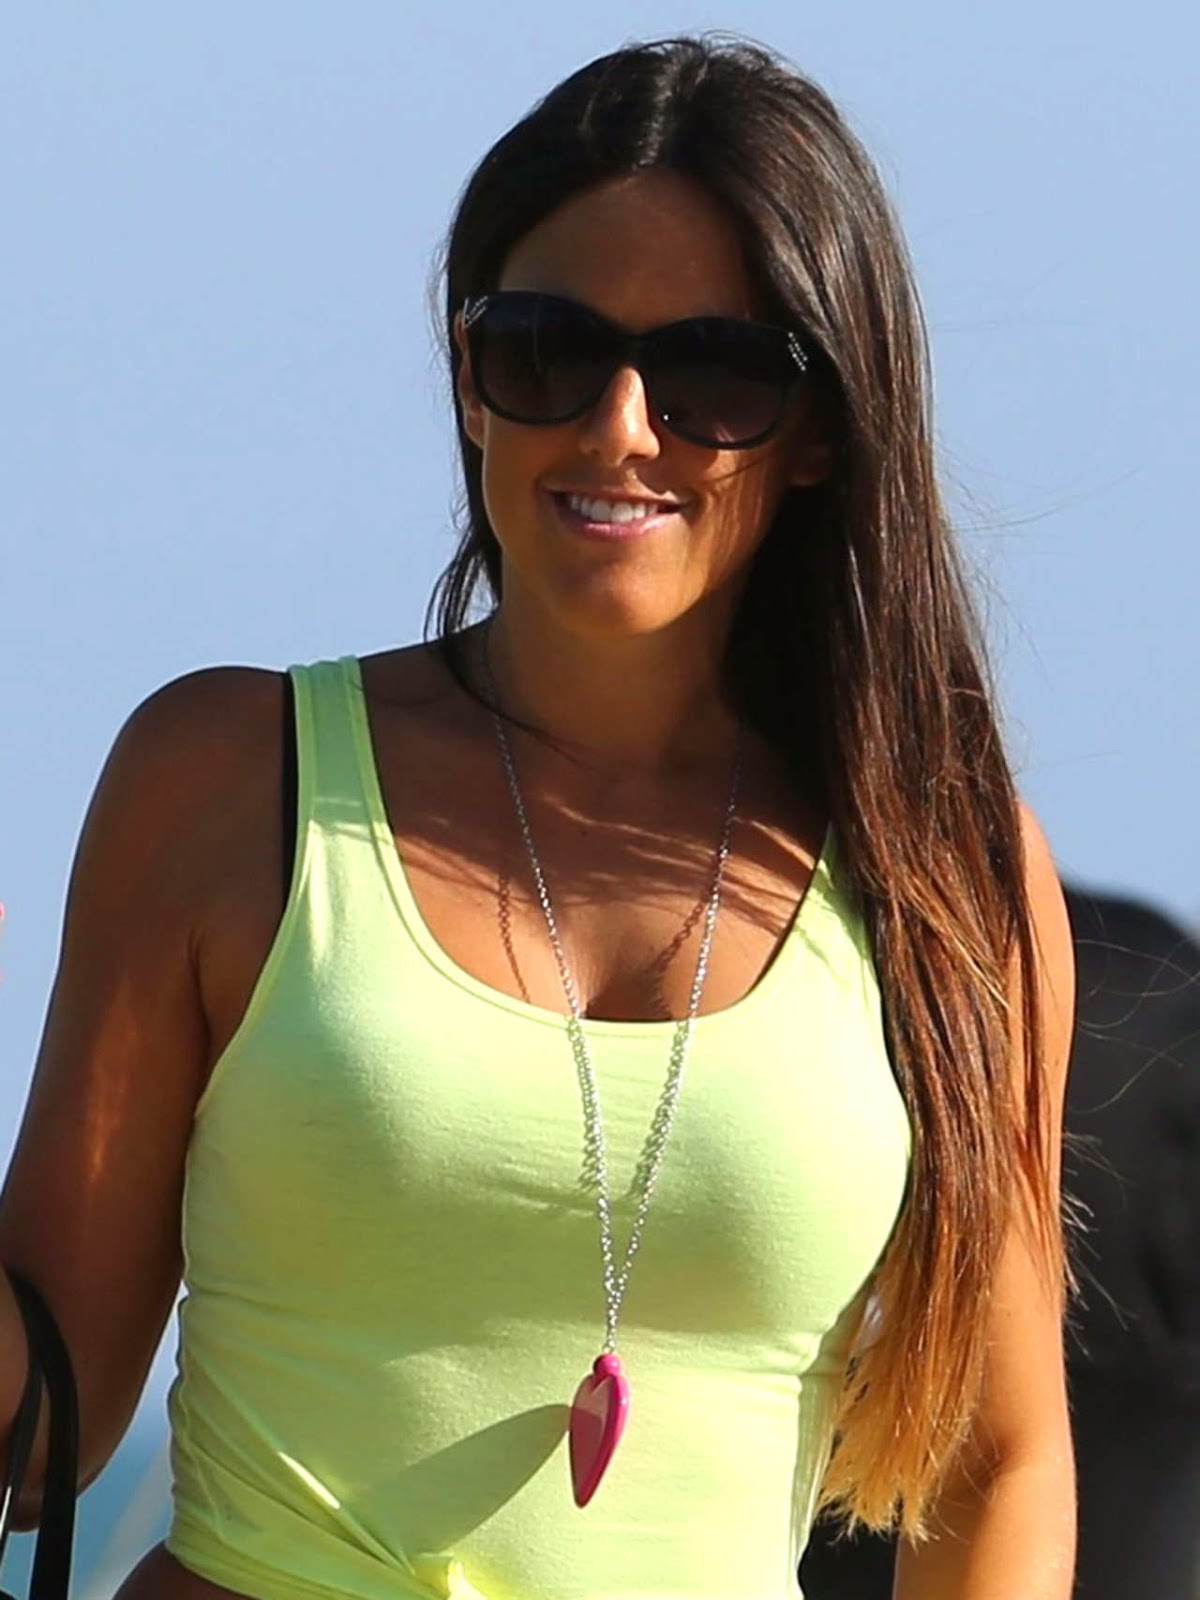 Claudia Romani the Thong Girl in lovely Black Thong and T-Shirt MUST SEE Beauty